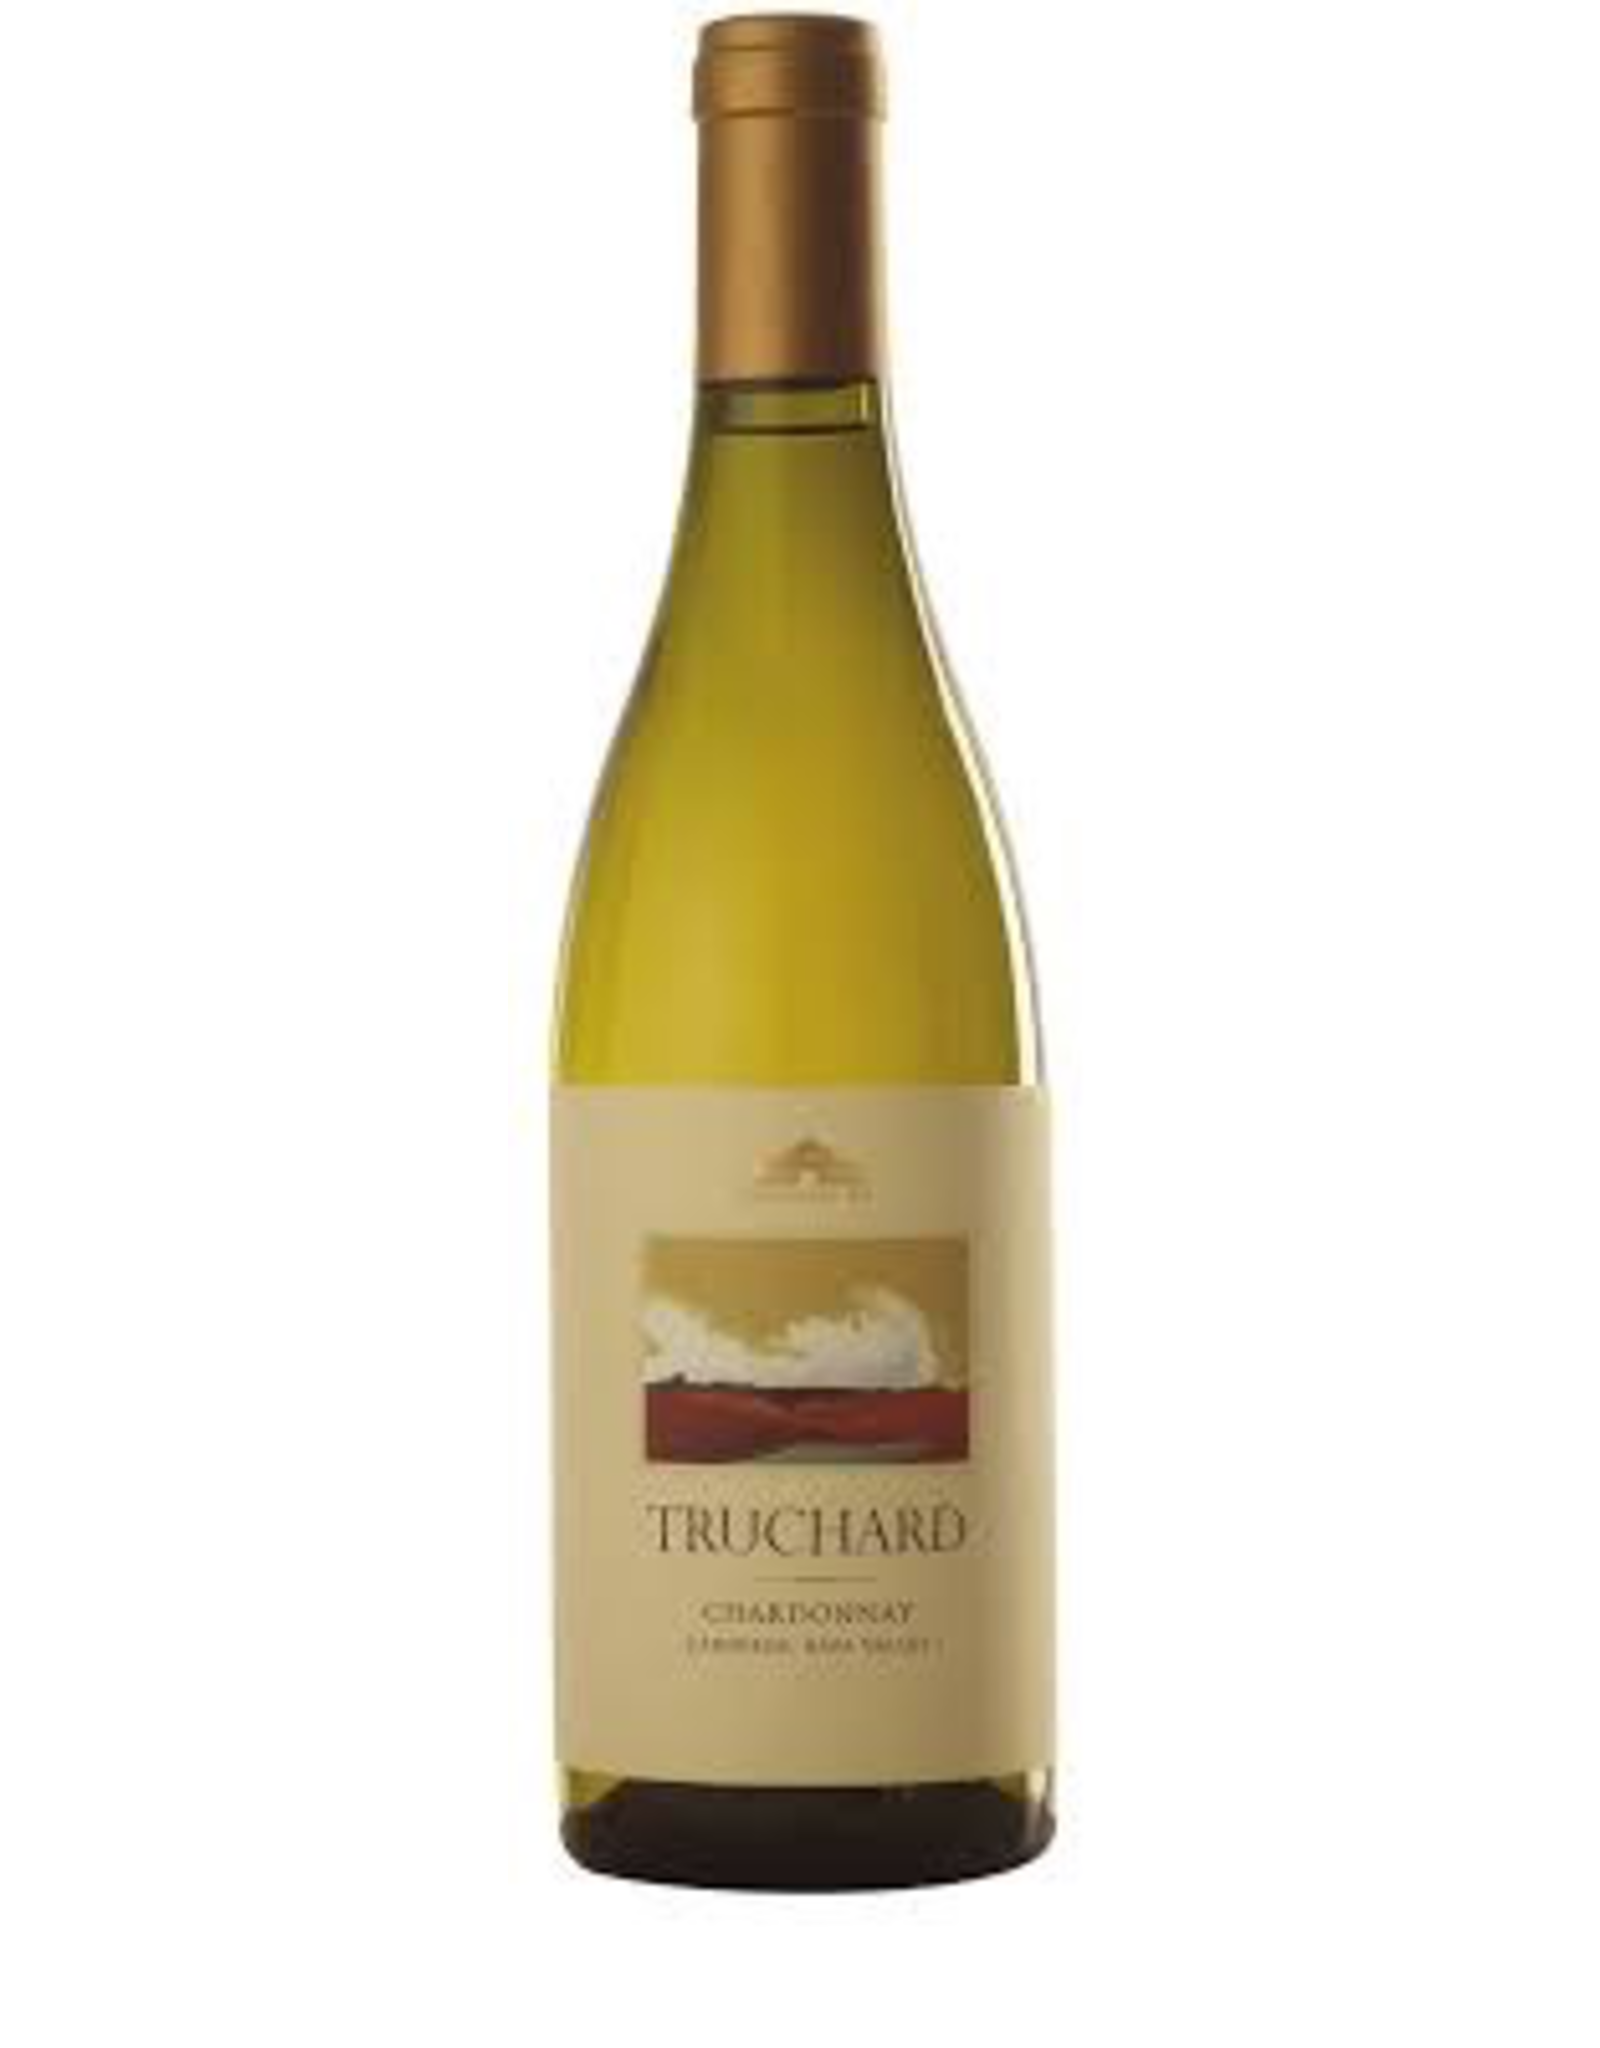 White Wine 2018, Truchard Vineyards, Chardonnay, Carneros, Napa, California, 14.1% Alc, CTnr, TW90